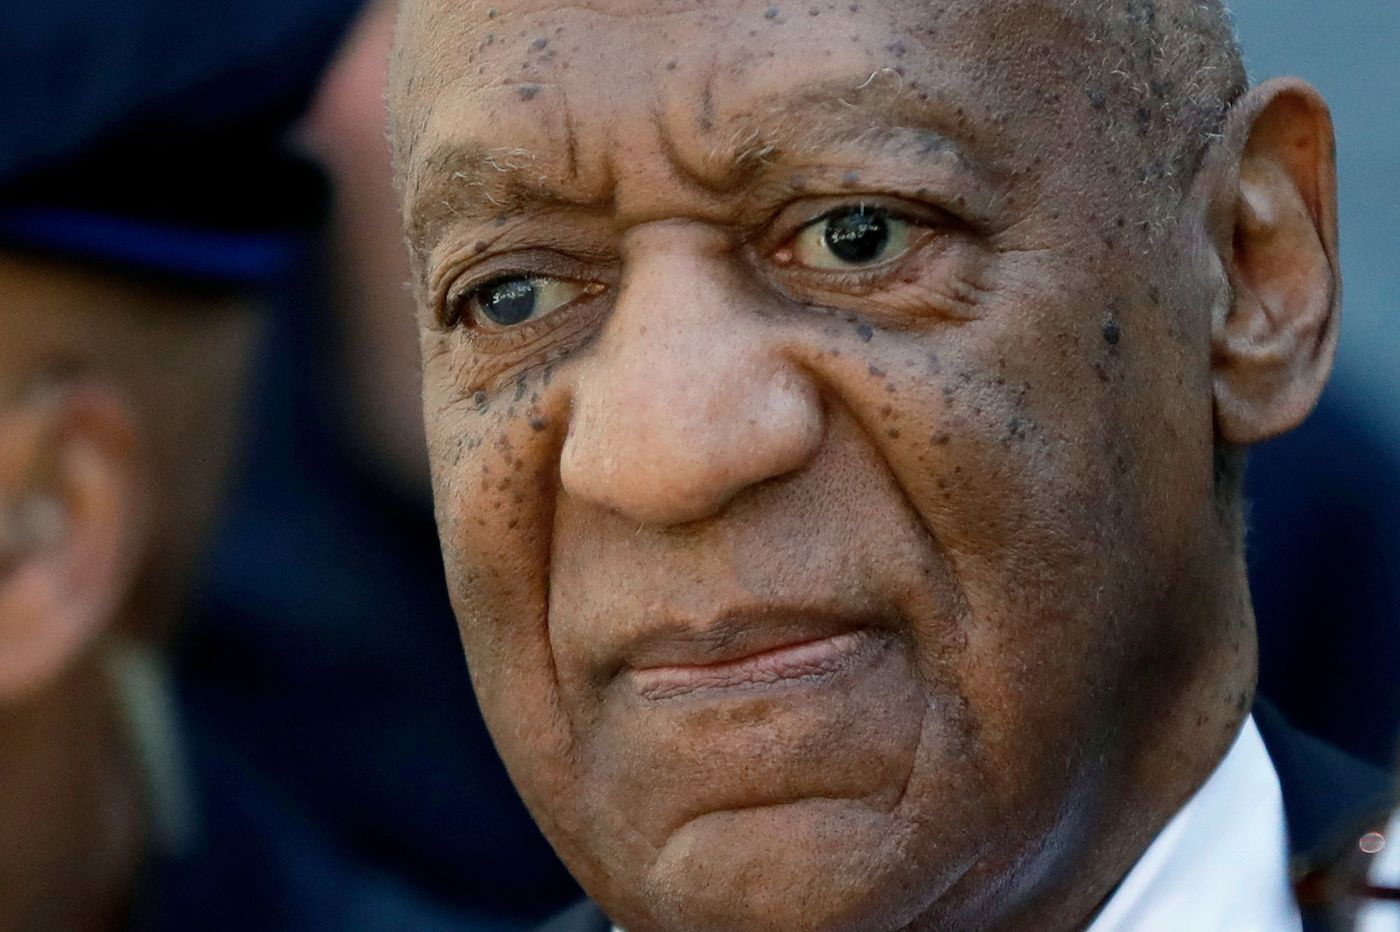 Bill Cosby vows he won't express 'remorse' to get parole on sex assault conviction